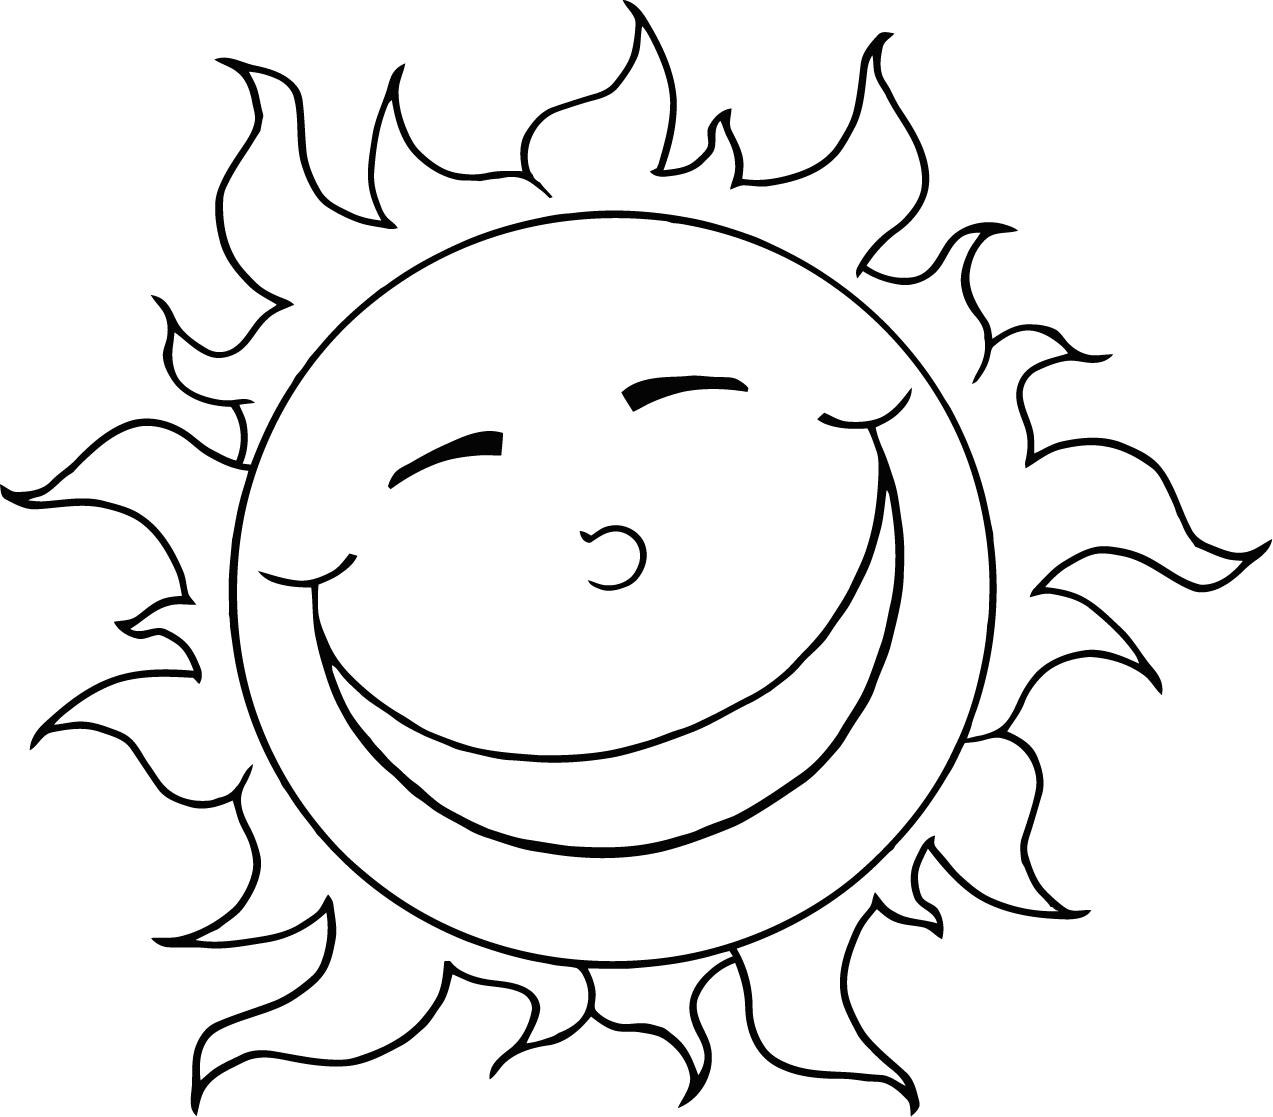 Best ideas about Sun Preschool Coloring Sheets . Save or Pin Free Printable Sun Coloring Pages for Kids Now.